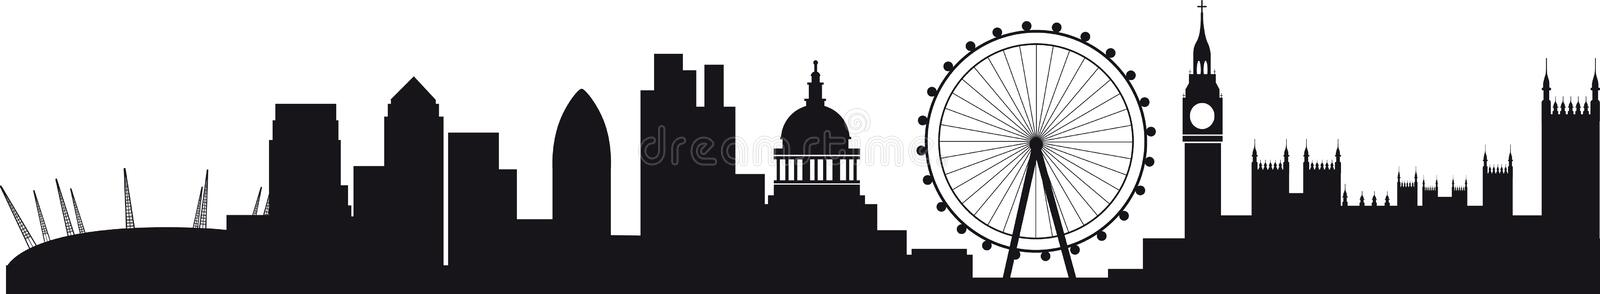 Detailed silhouette of london skyline royalty free illustration